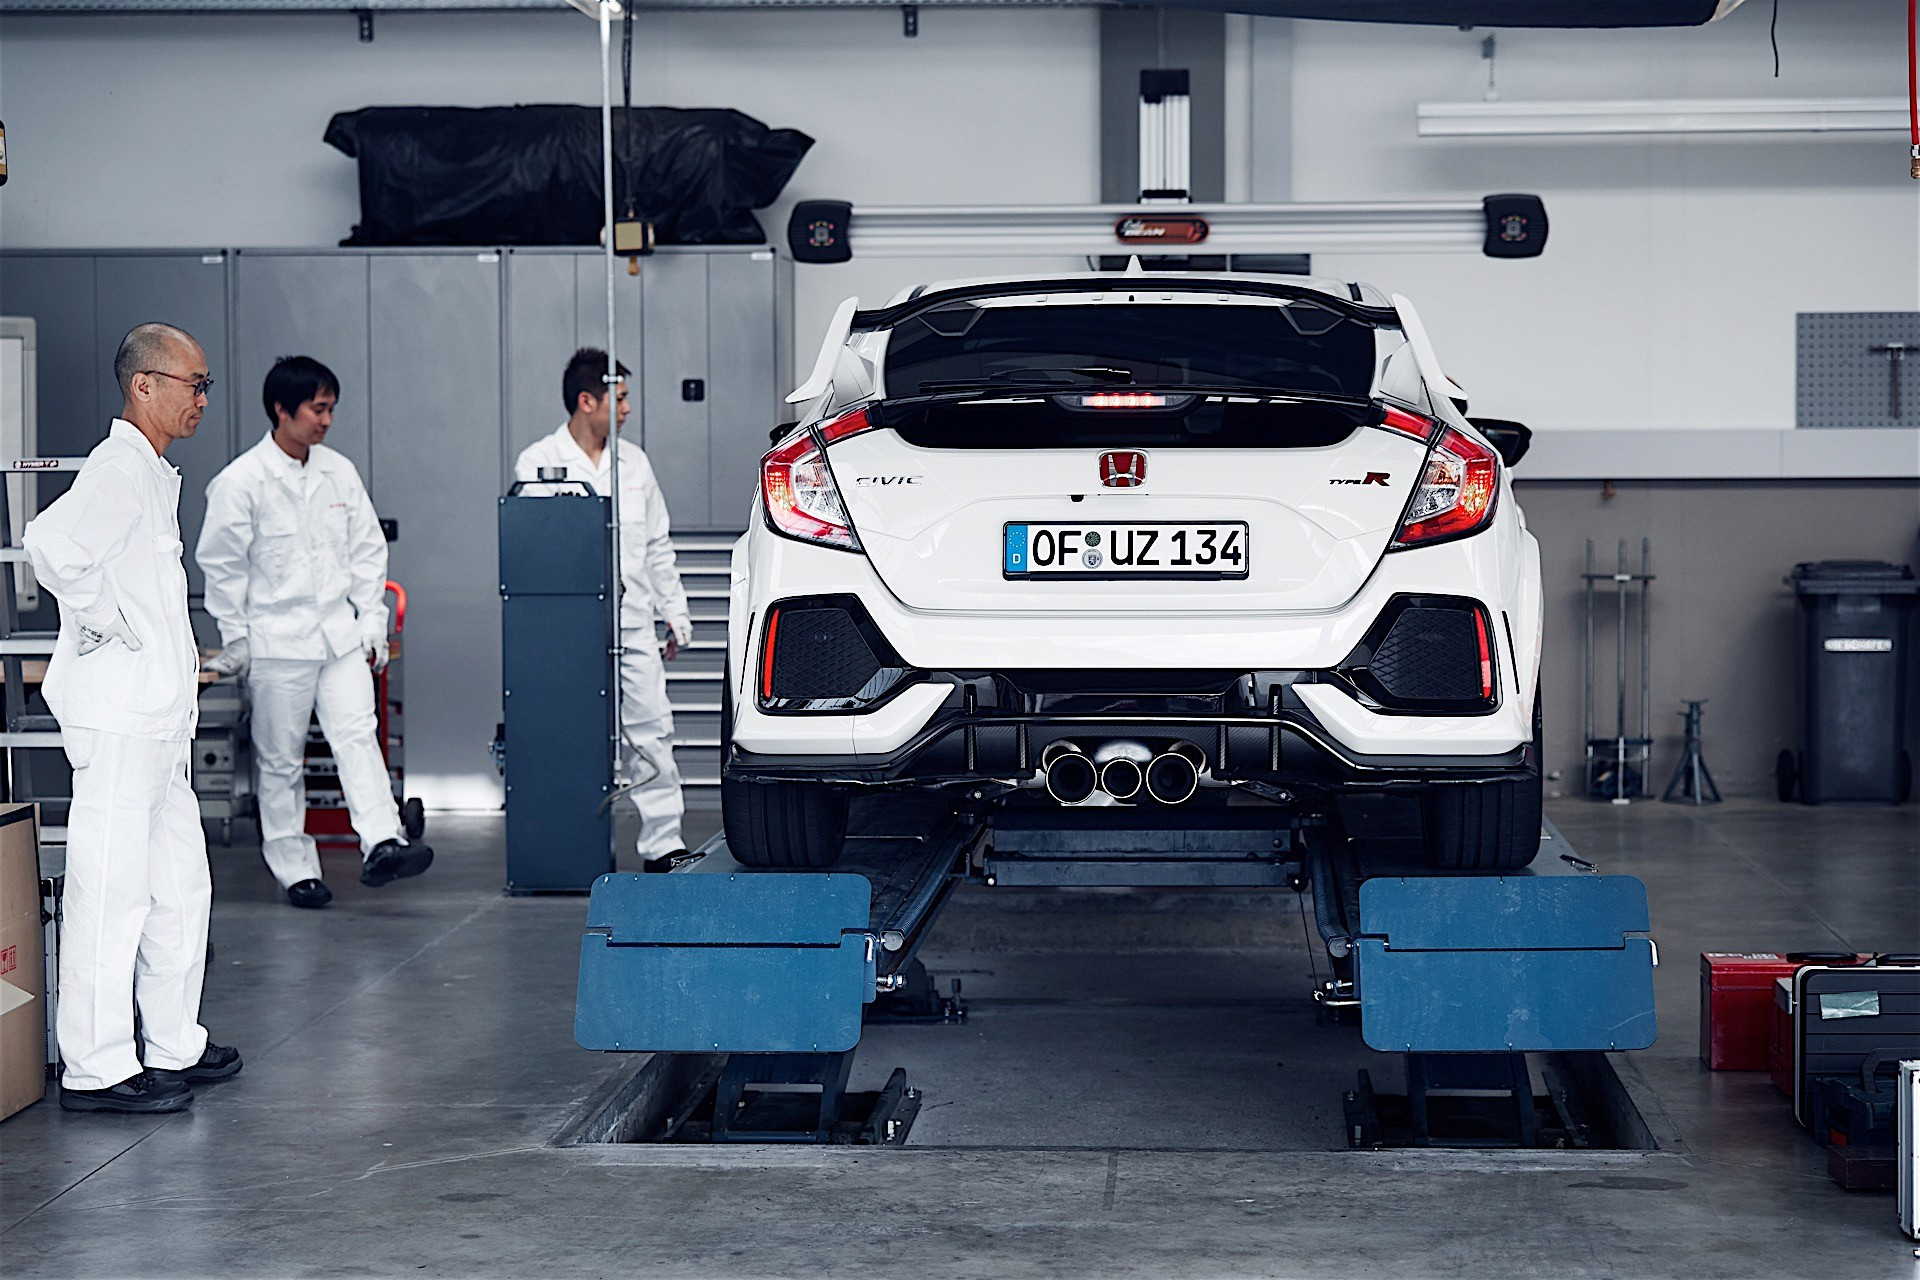 2018 Honda Civic Type R Priced In The UK From £30,995 ...